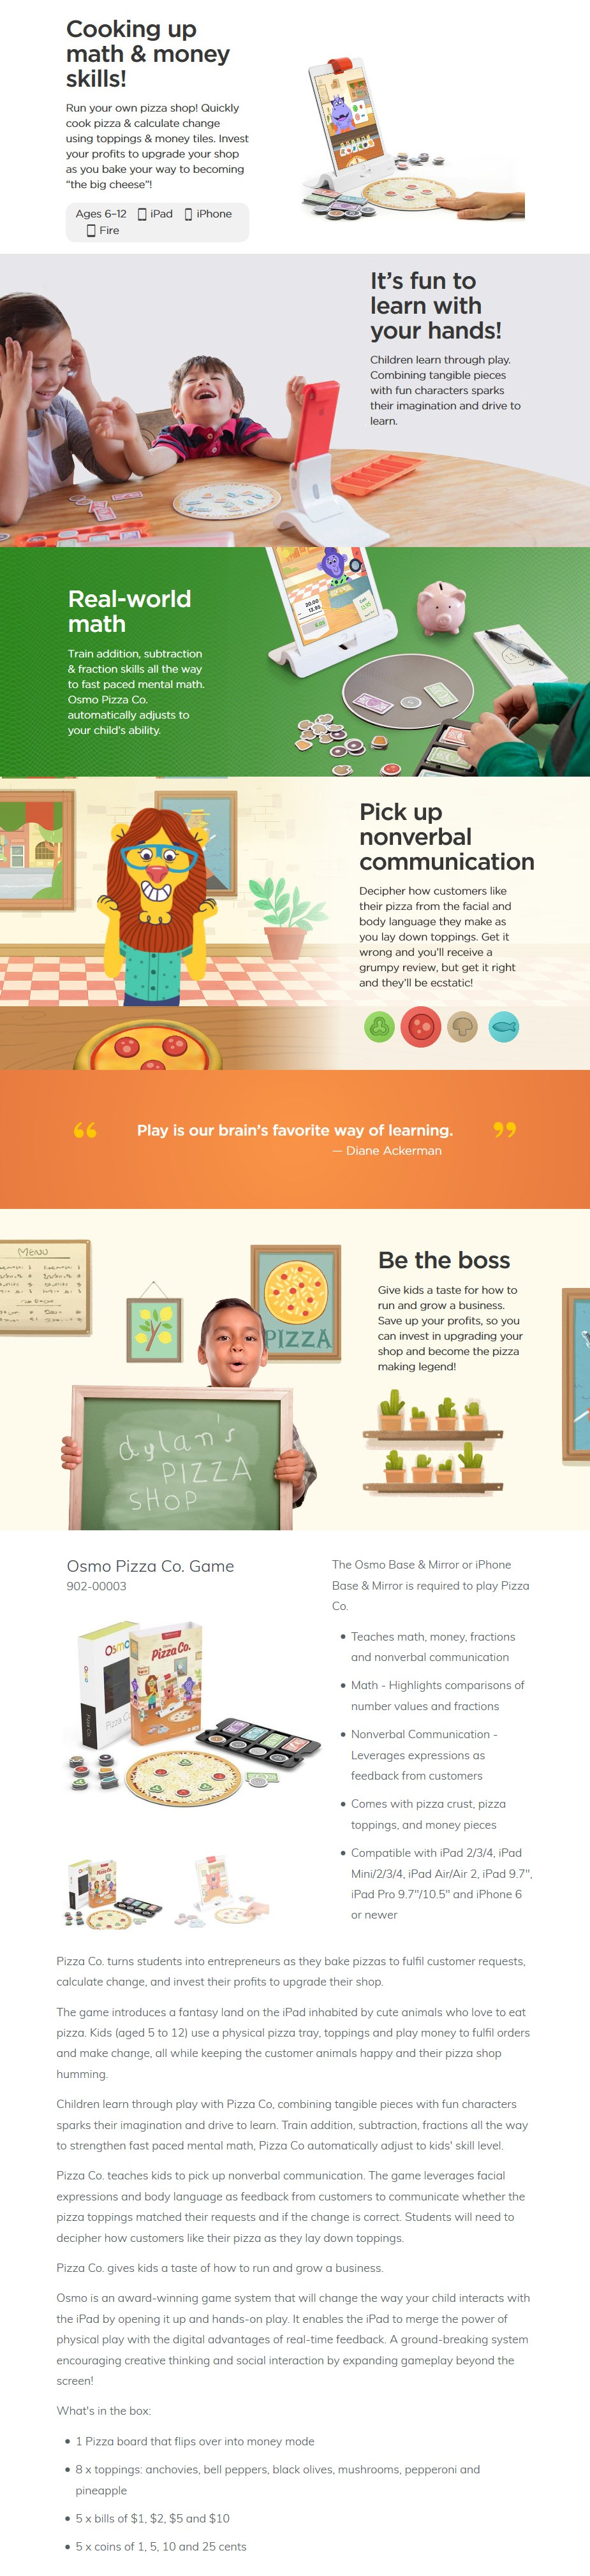 Osmo Pizza Co. Game for iPhone & iPad - Desktop Overview 1